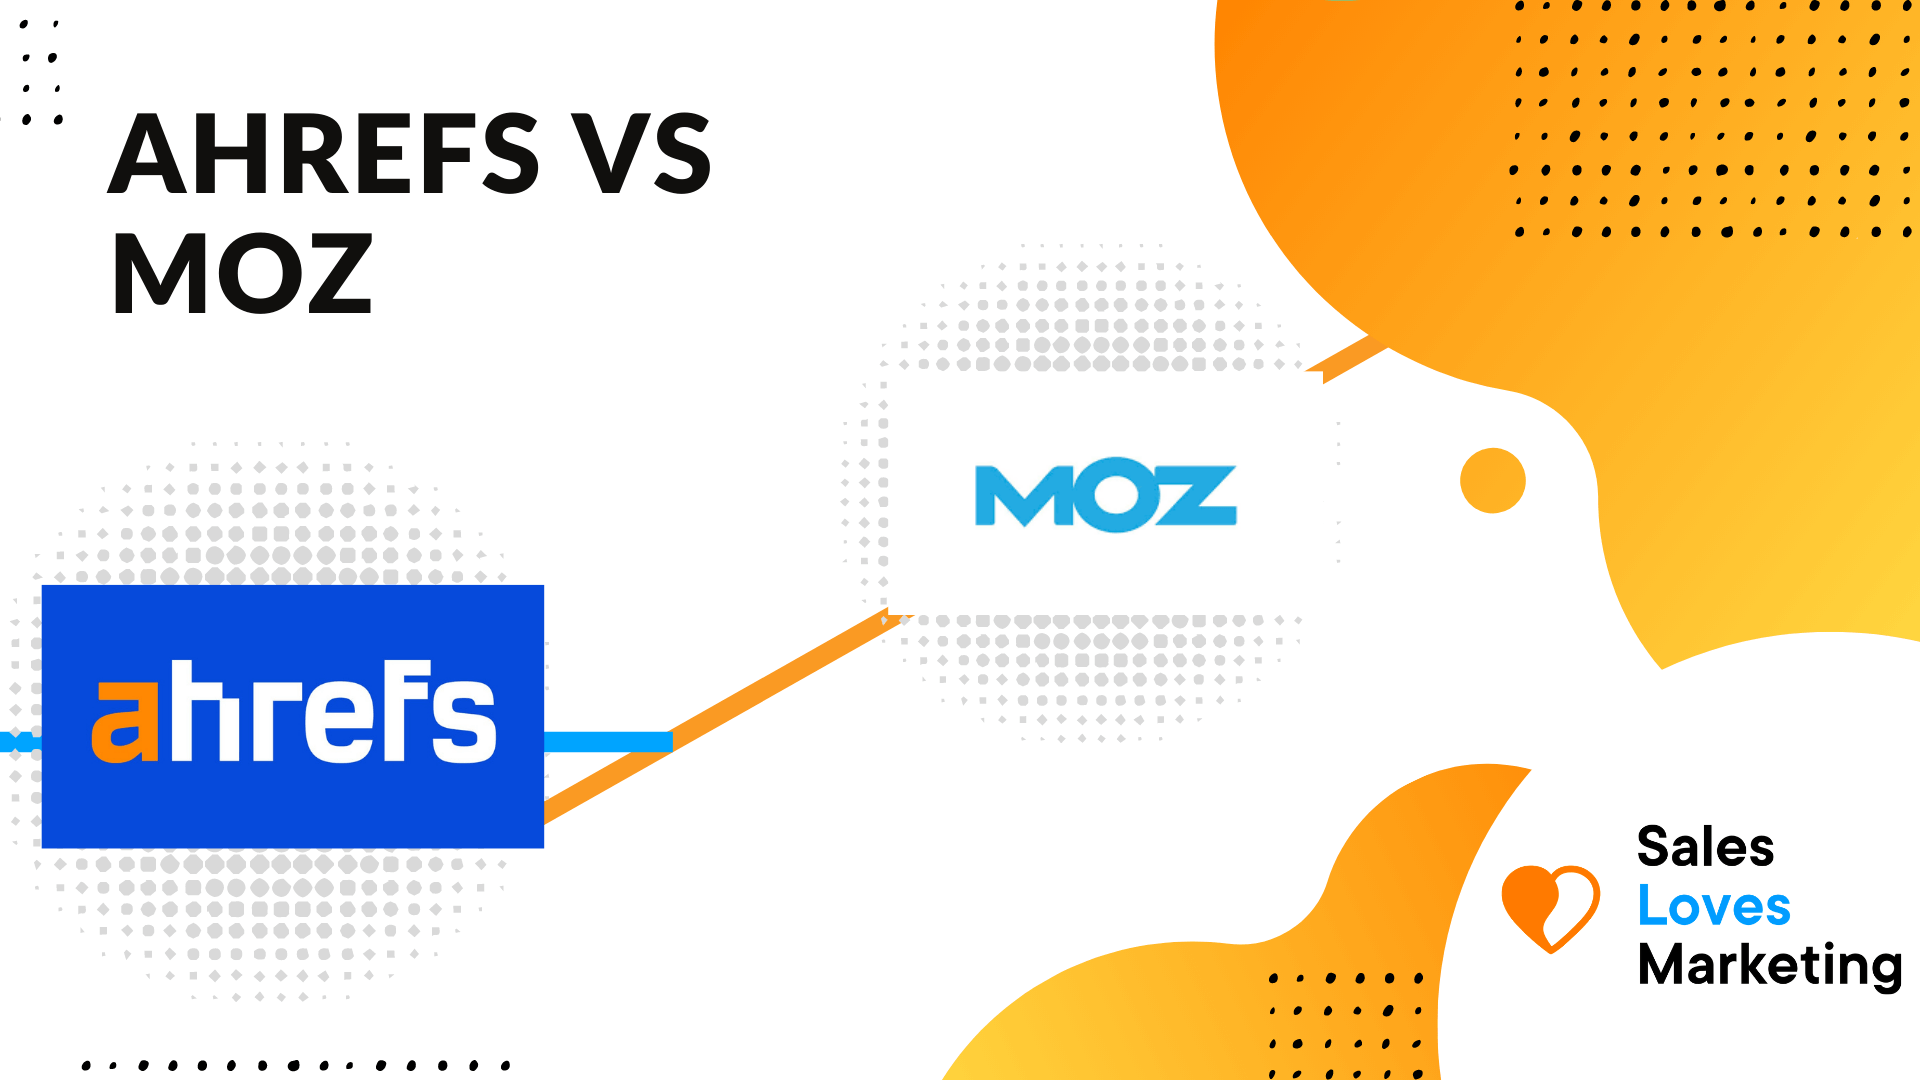 What is a better SEO tool? Ahrefs vs Moz